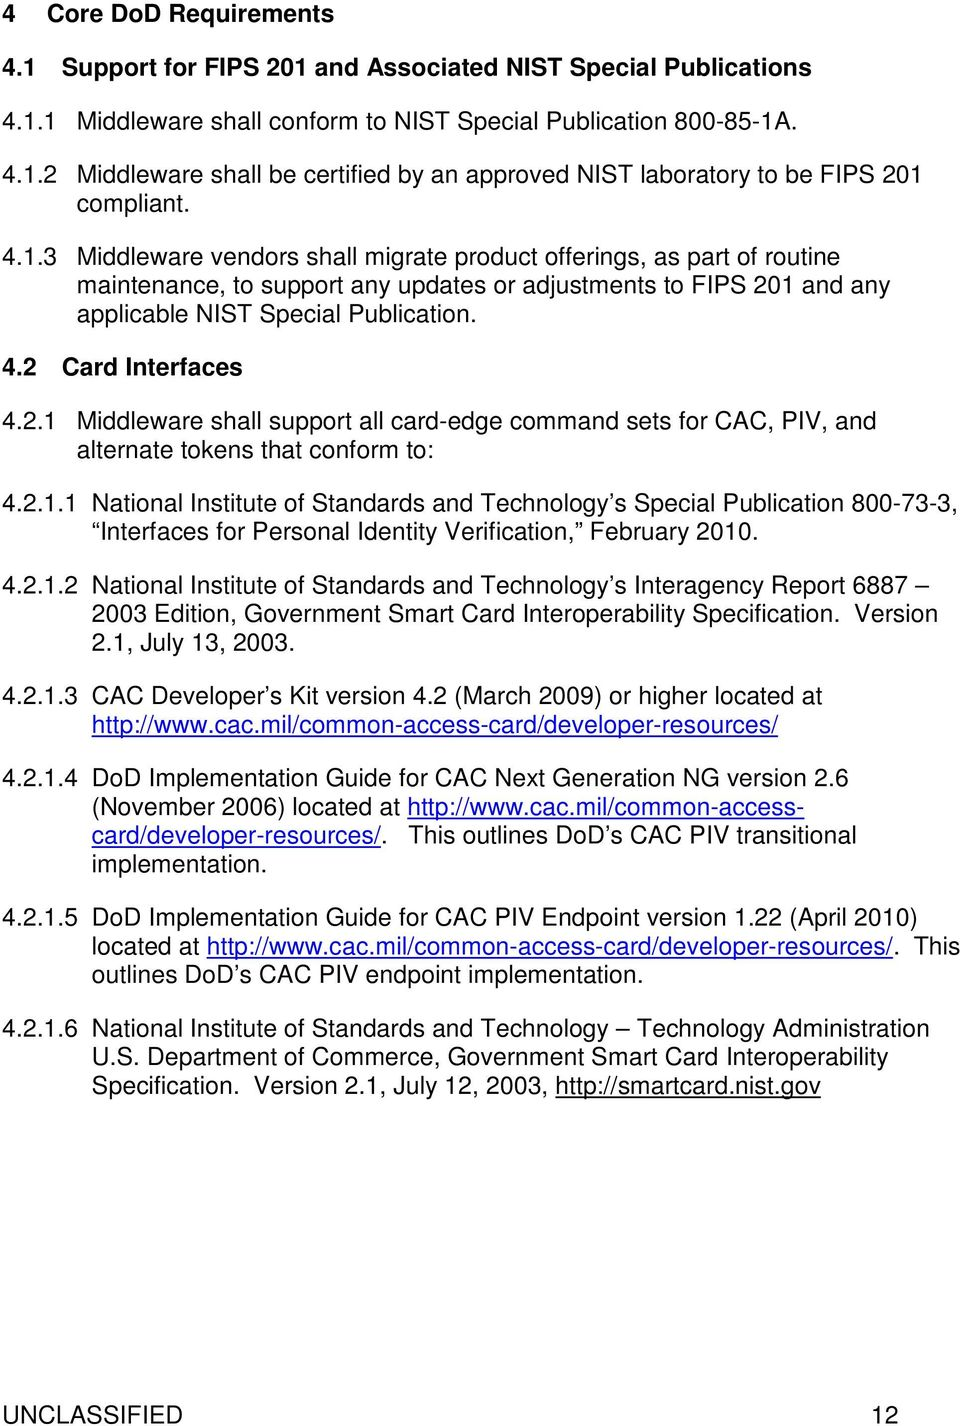 dod cac middleware